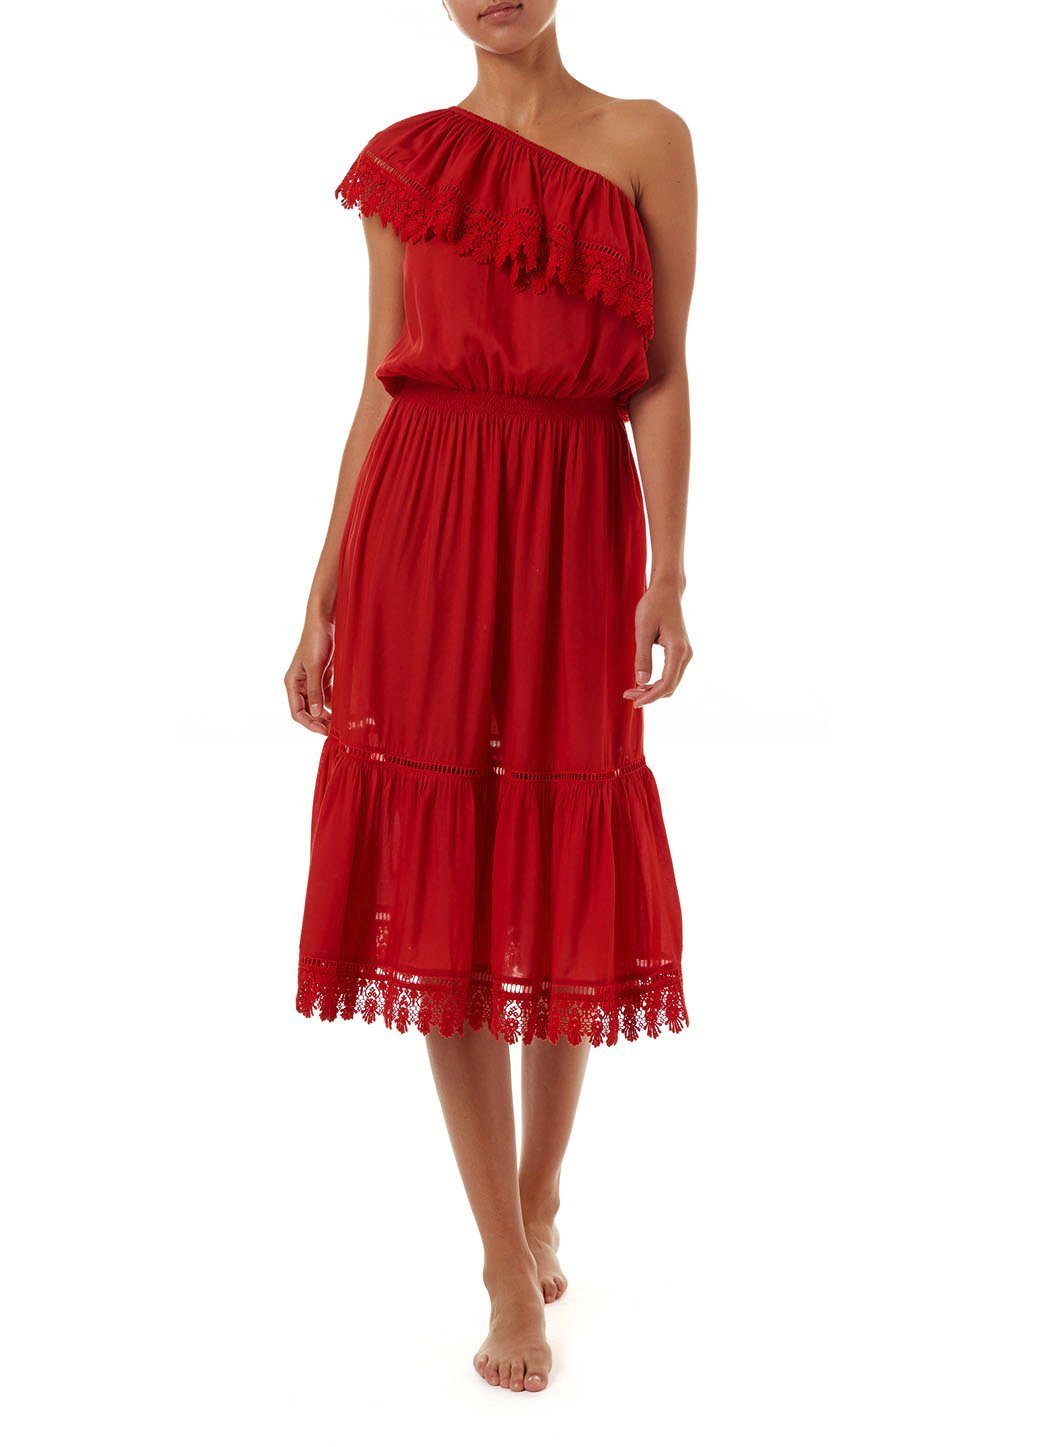 jo red oneshoulder embroidered frill midi dress 2019 F